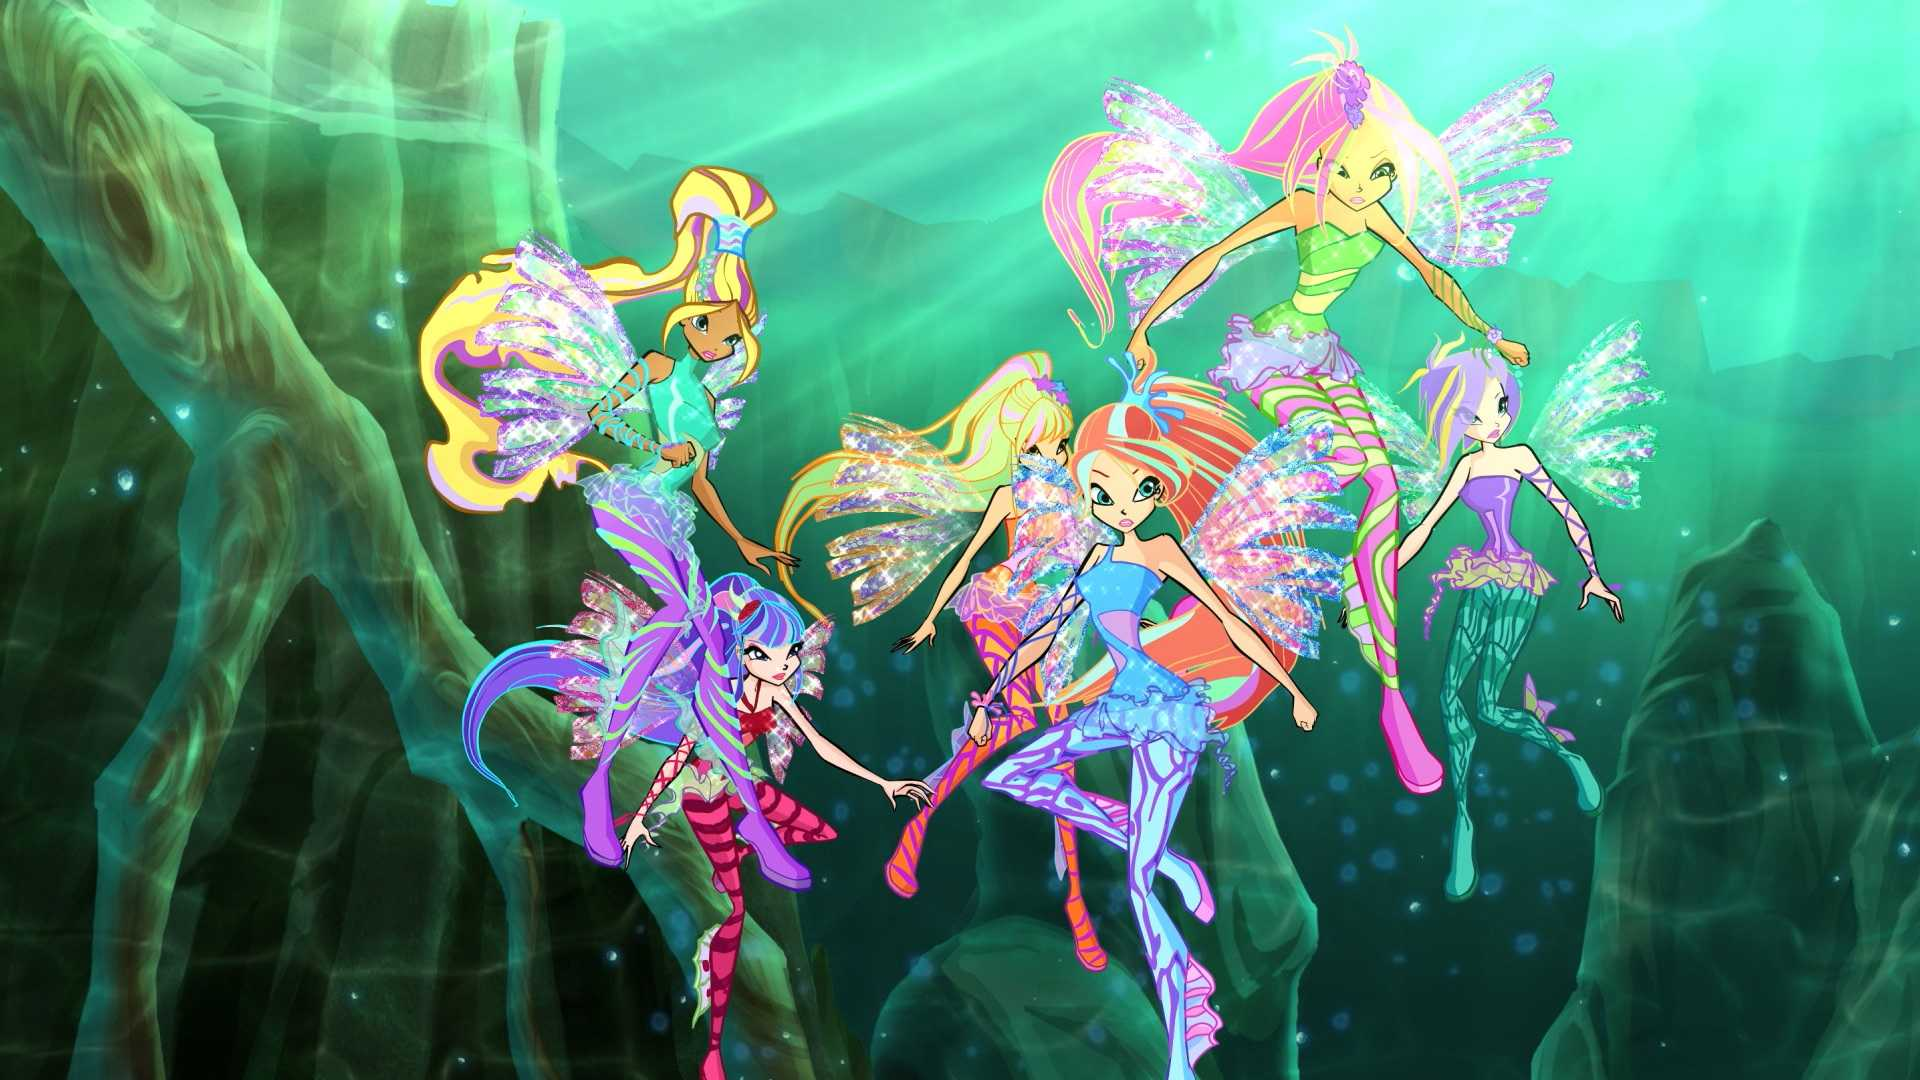 Winx Club serie 6: dal 6 Gennaio su Rai Due | Digitale terrestre: Dtti.it